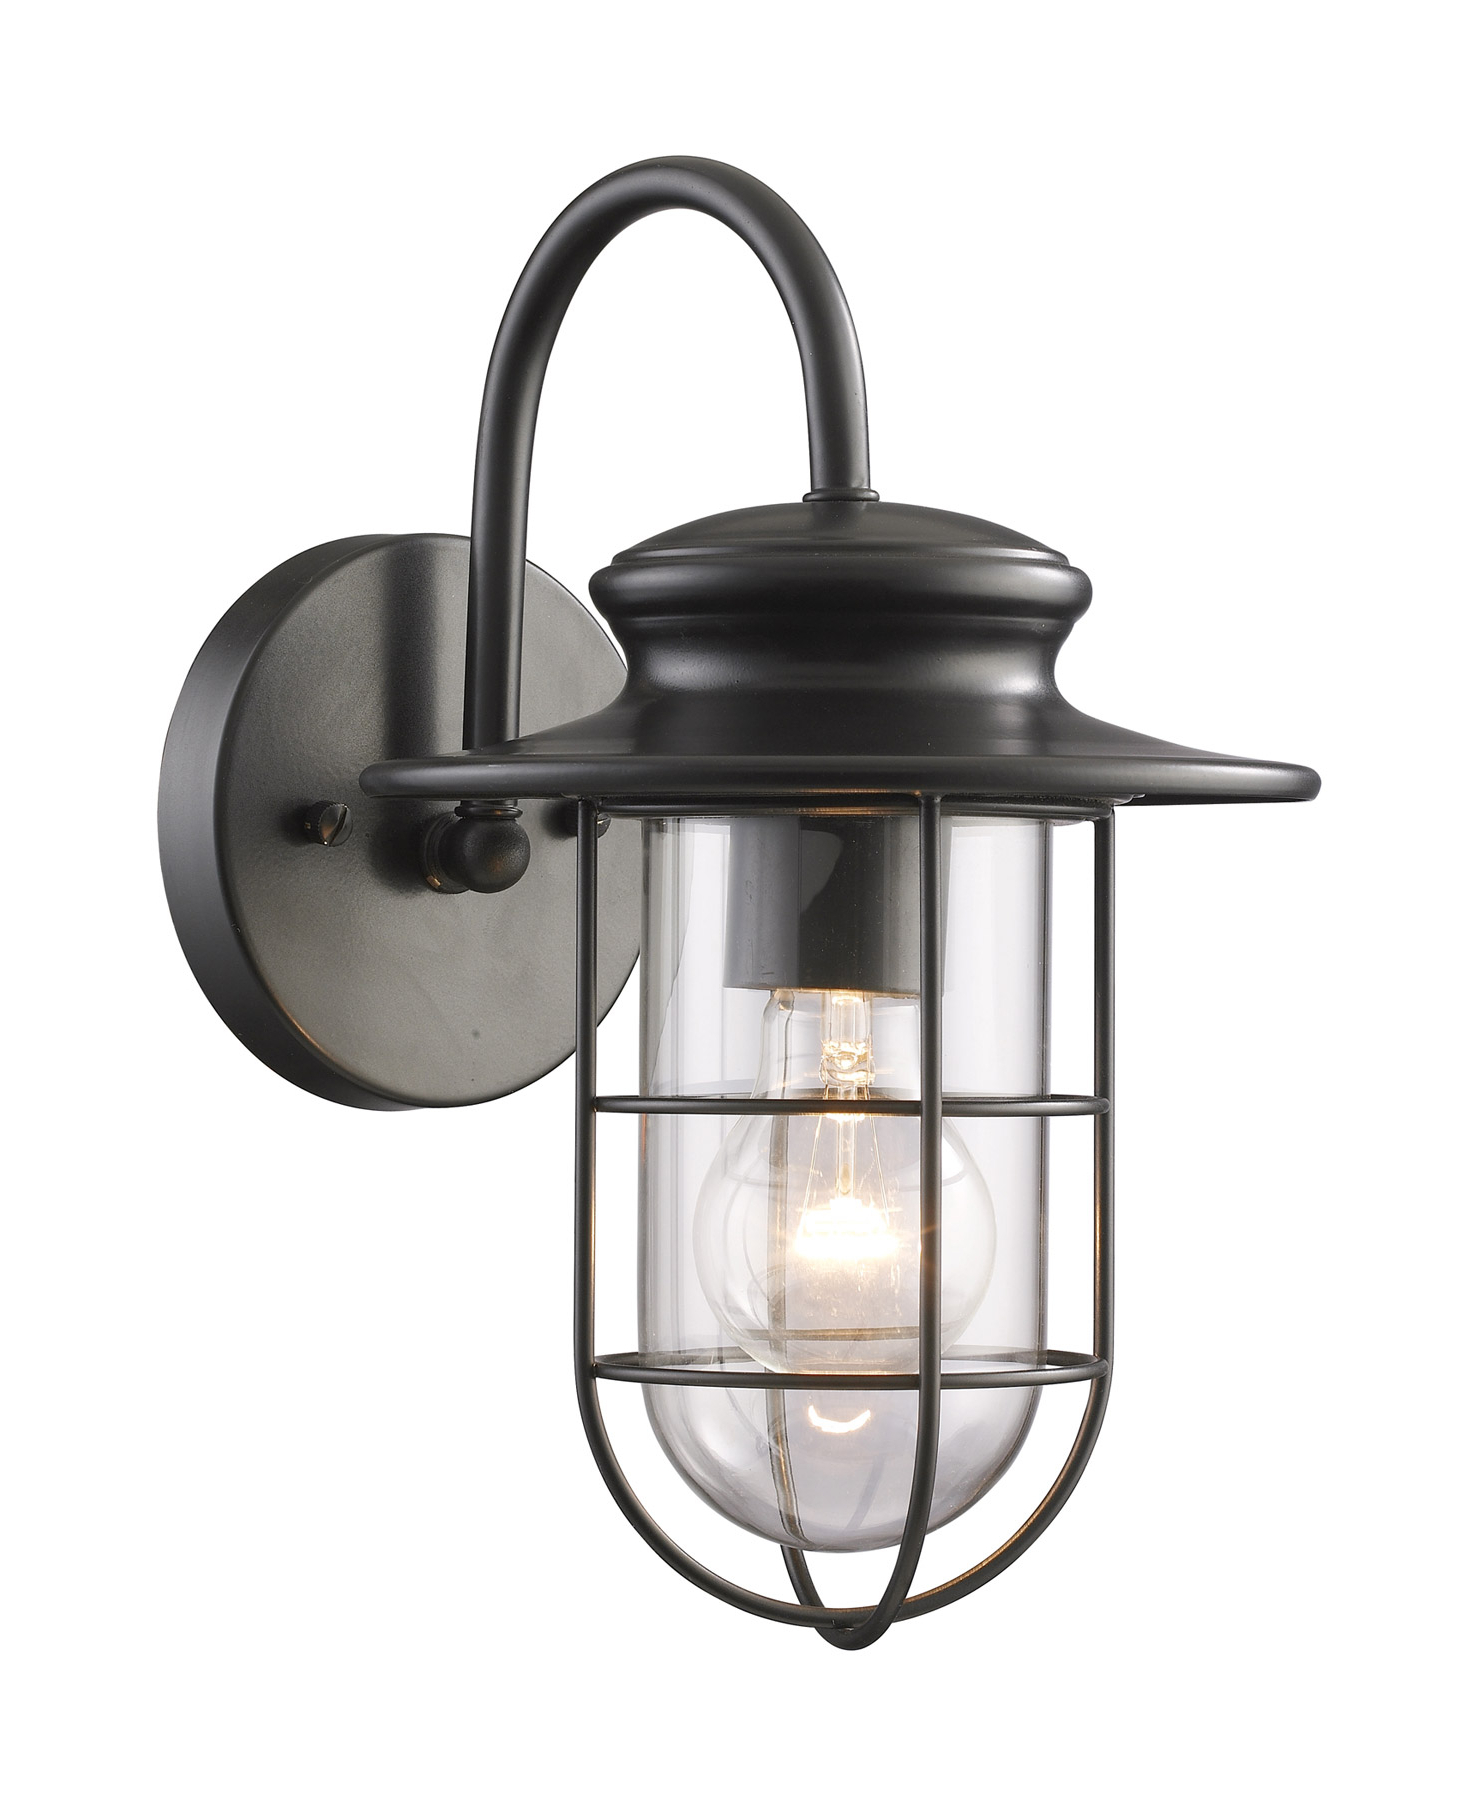 Malak Outdoor Wall Lanterns With Regard To Most Current Elk Lighting 42284/1 Portside Outdoor Wall Mount Lantern (View 19 of 20)